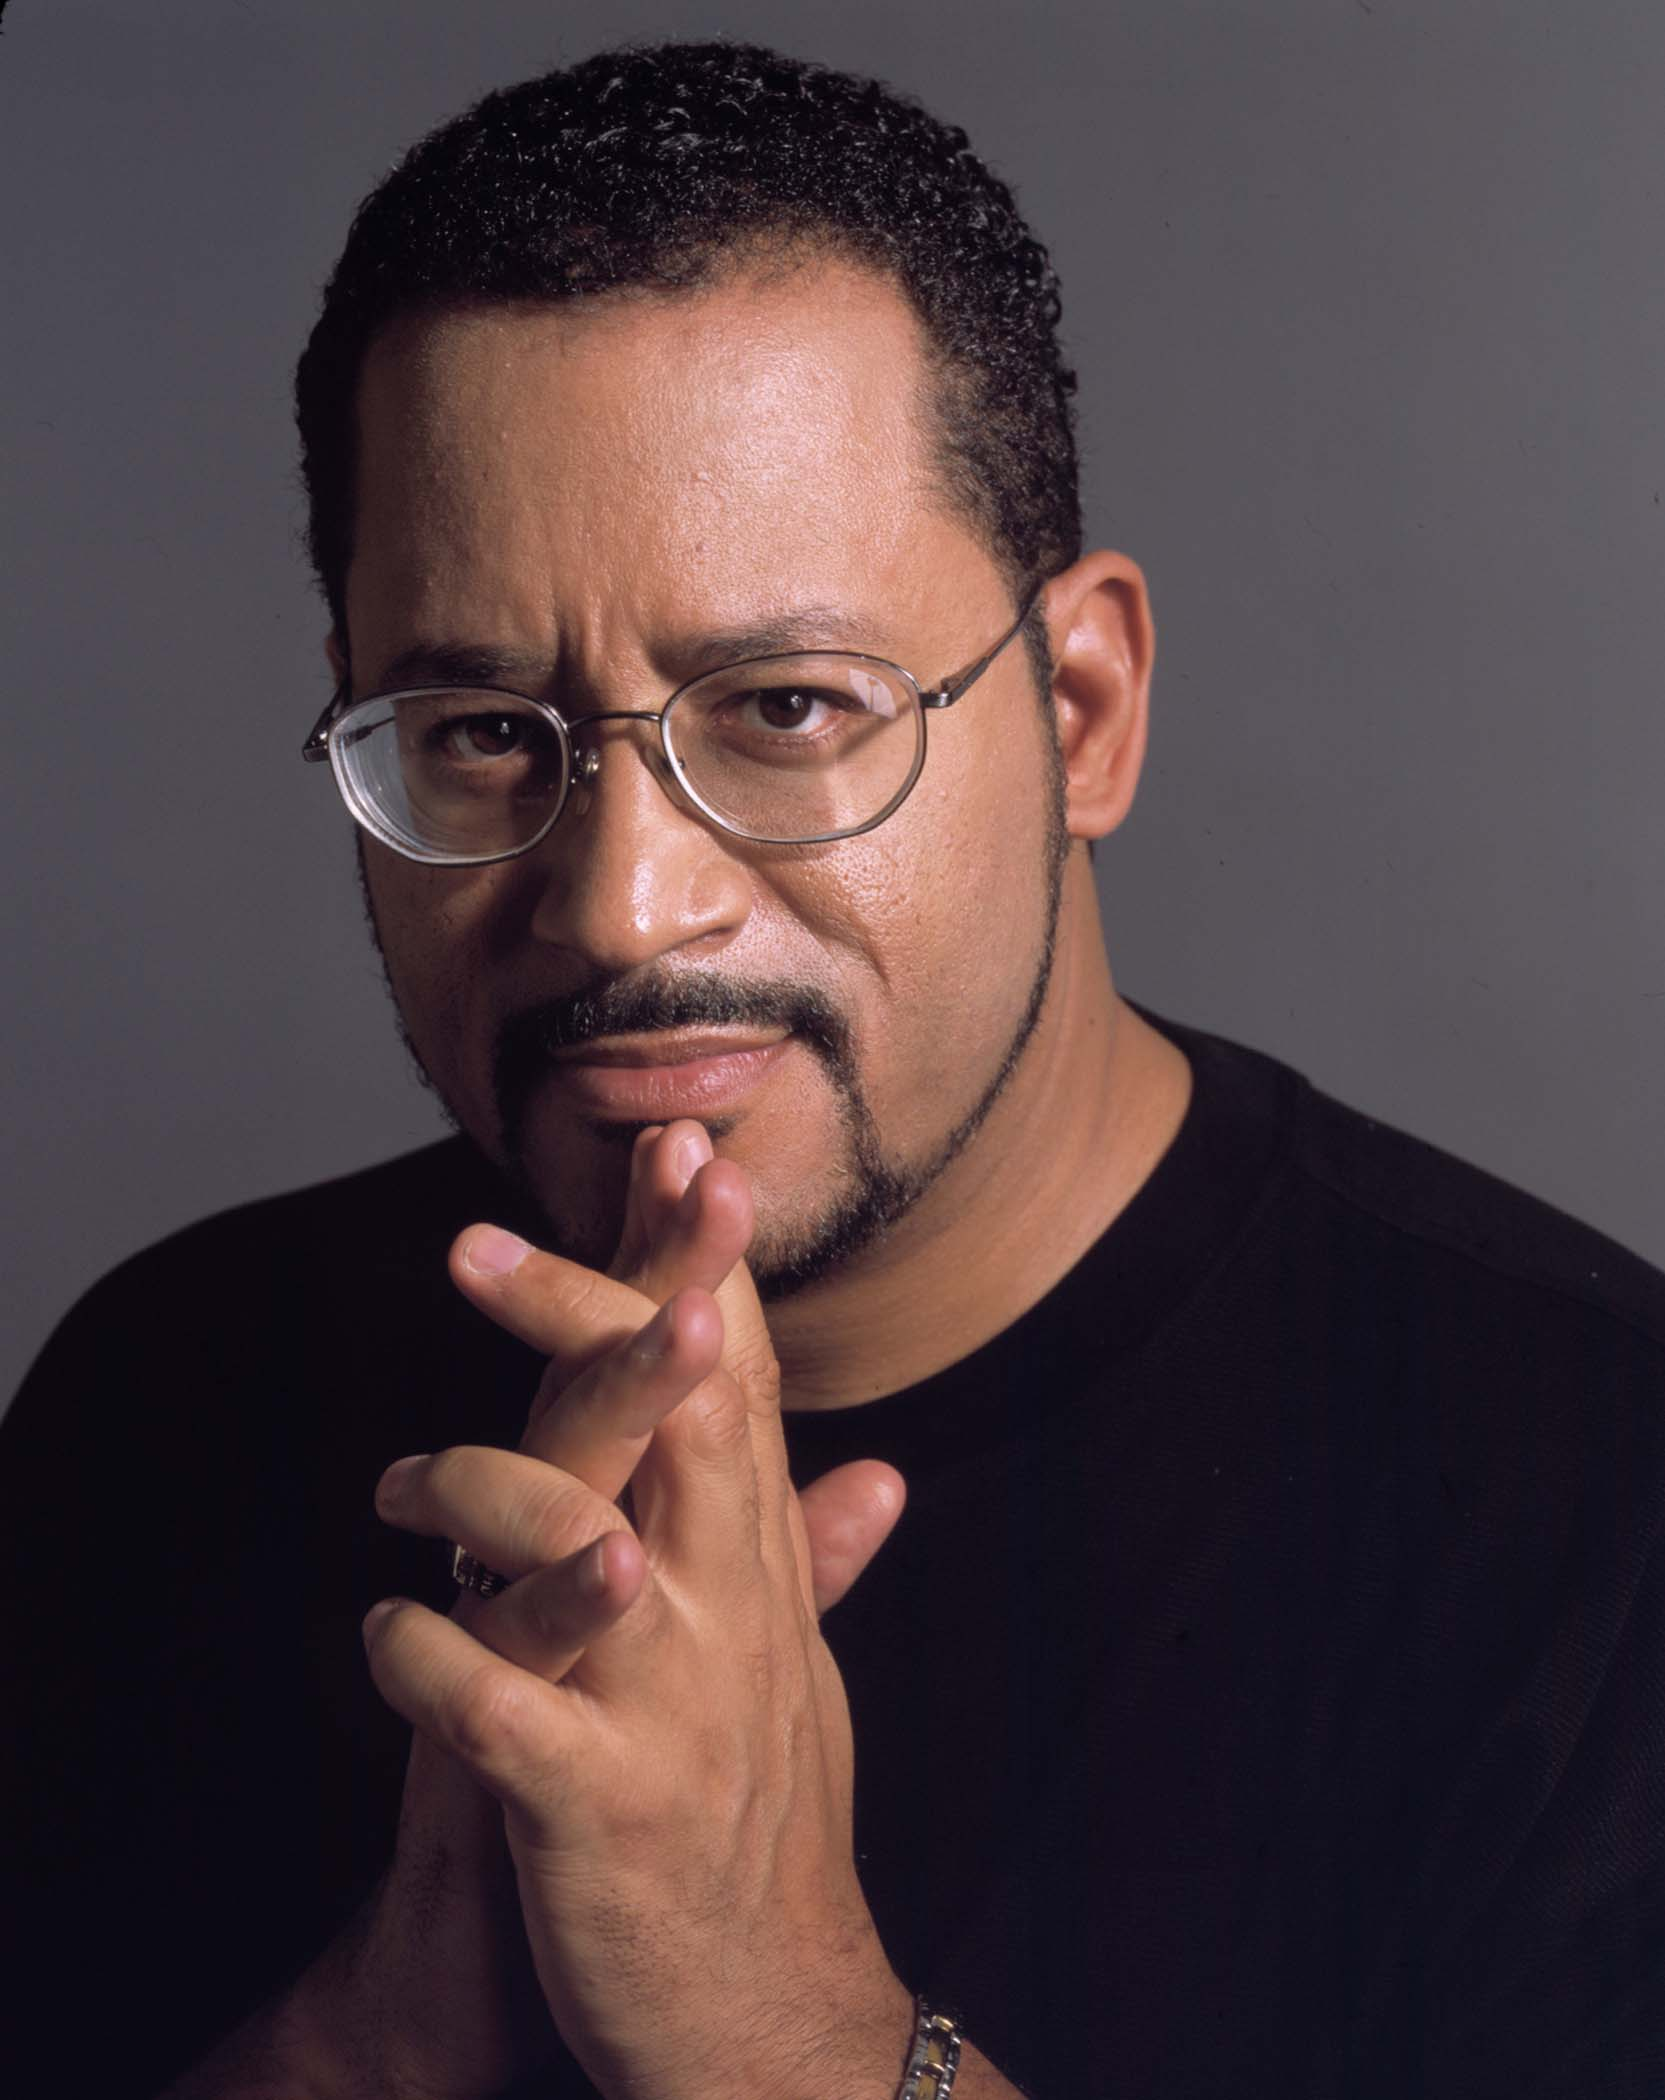 18th Annual Dr. Martin Luther King Jr. Celebration: Michael Eric Dyson